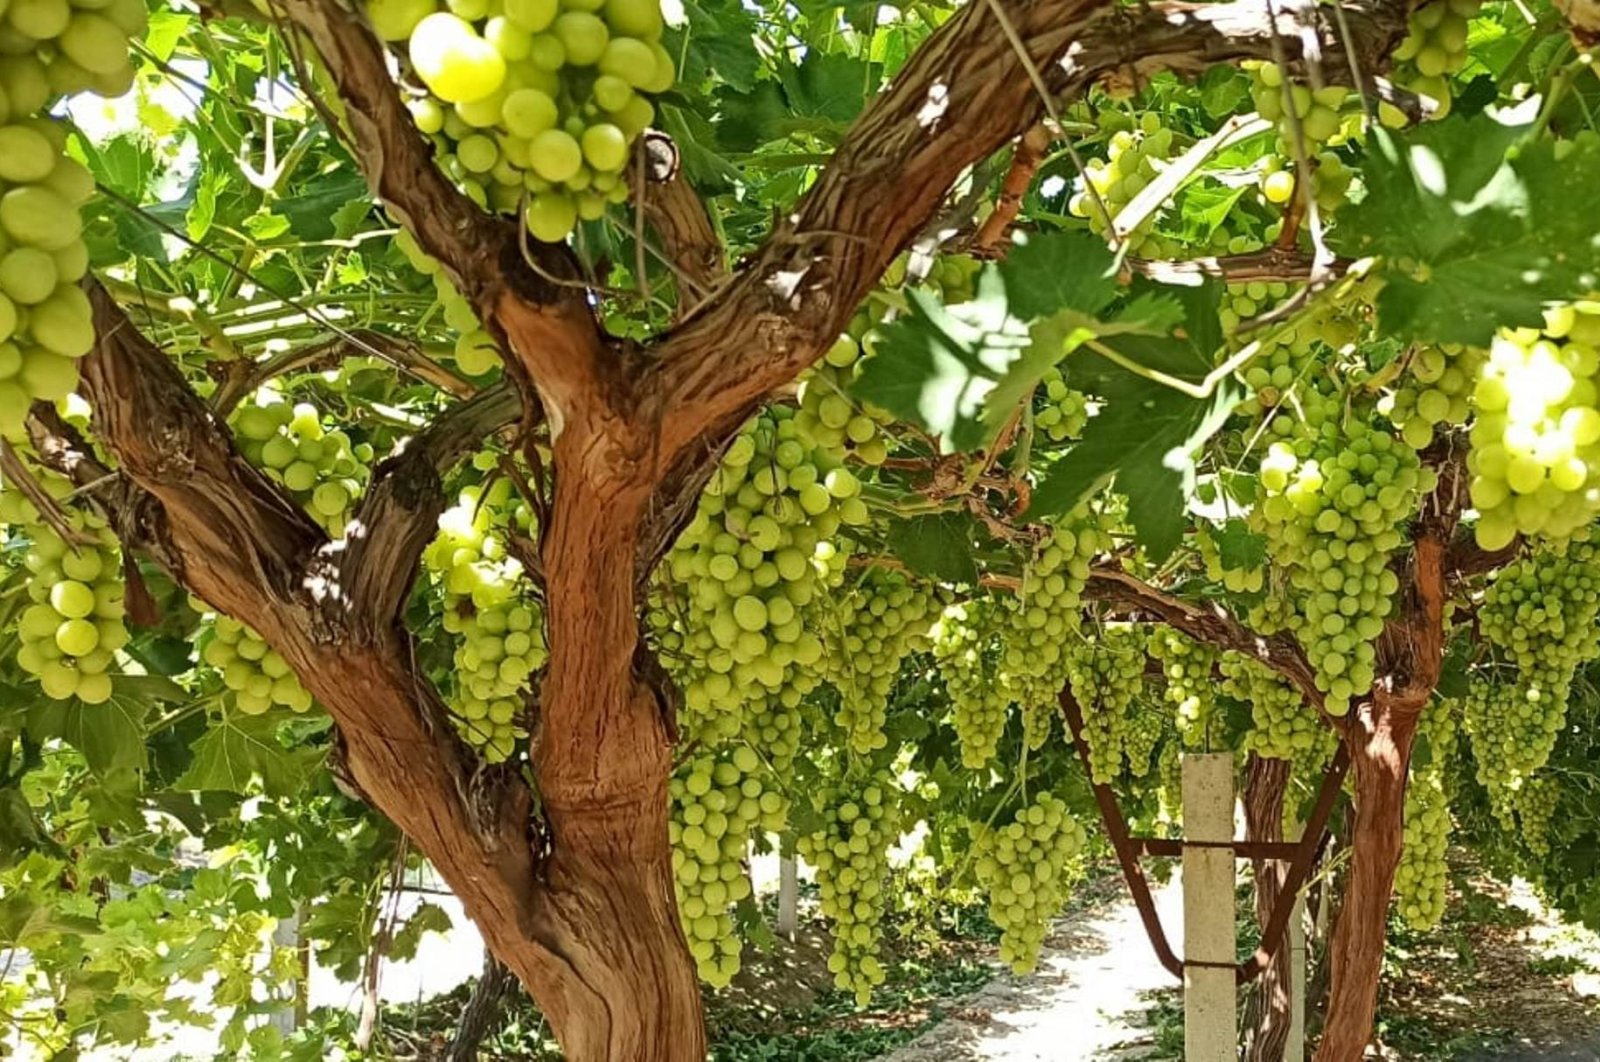 Grapevines are seen in a vineyard in Manisa province in the Aegean region of Turkey, July 20, 2020. (IHA Photo)